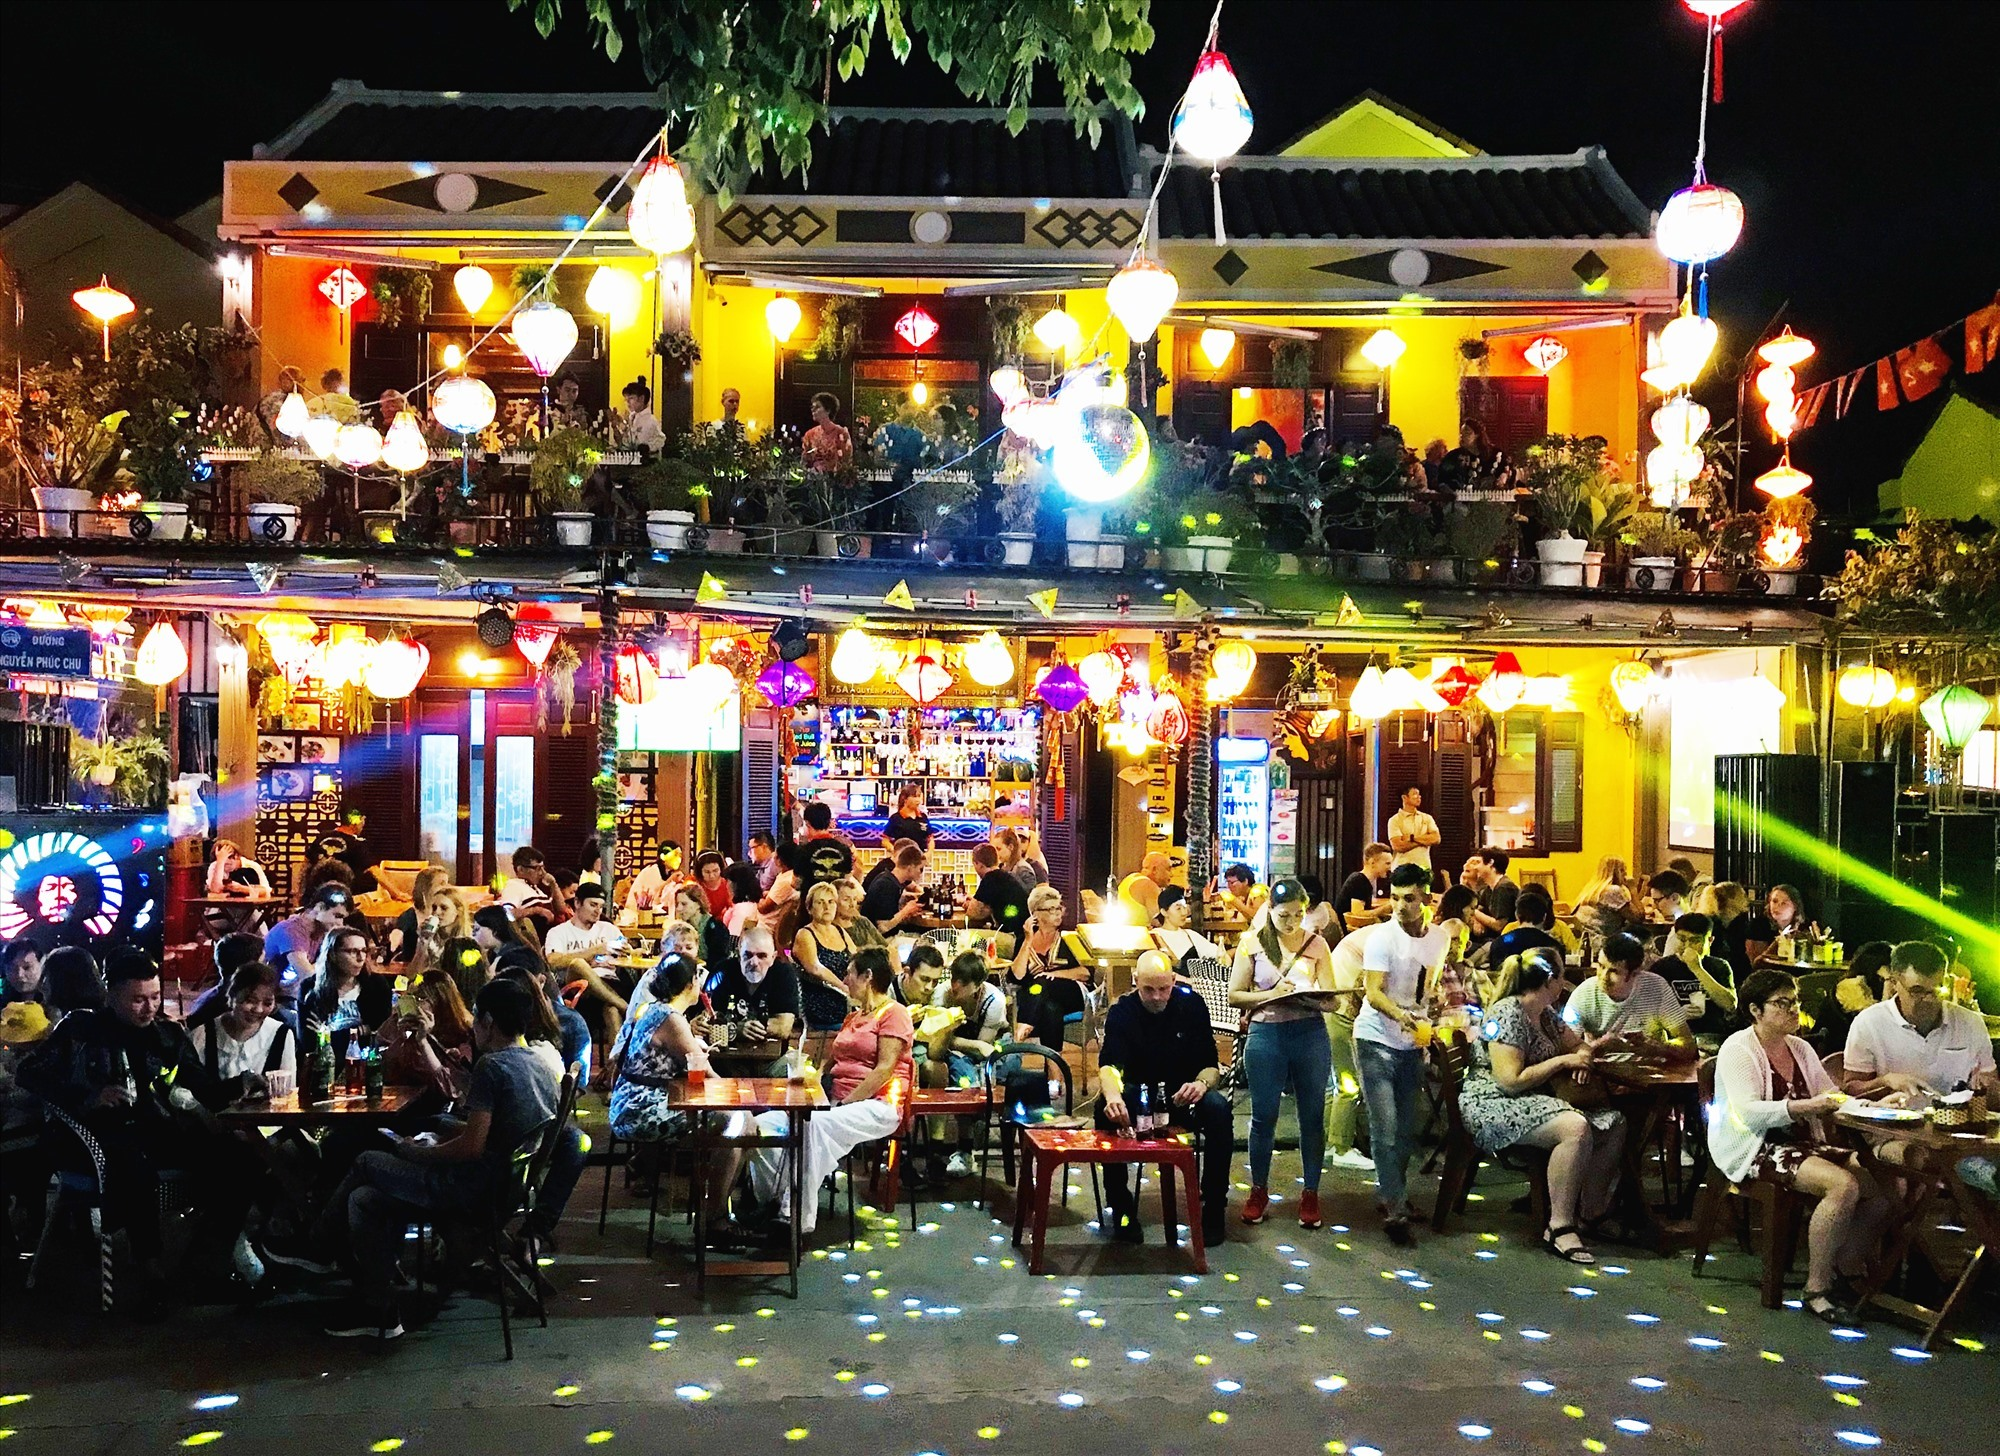 A night tourism product in Hoi An